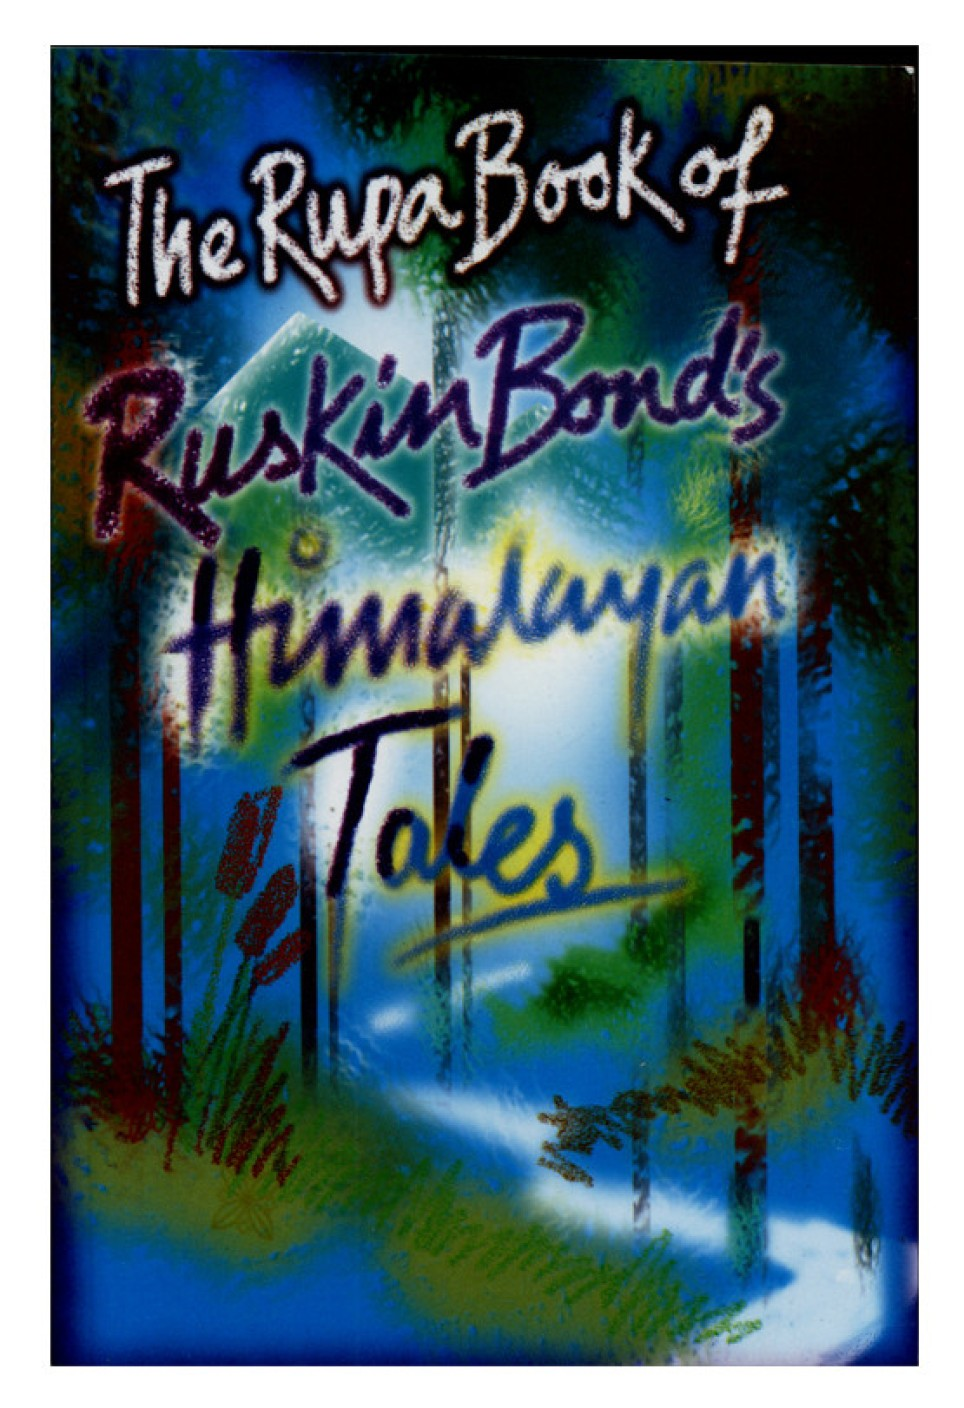 the eyes have it by ruskin bond summary Ruskin bond's short story the eyes are not here tells the story of two blind people who meet on a train the narrator sits by a girl who he enjoys speaking to, but he cannot see her and wonders what she looks like.